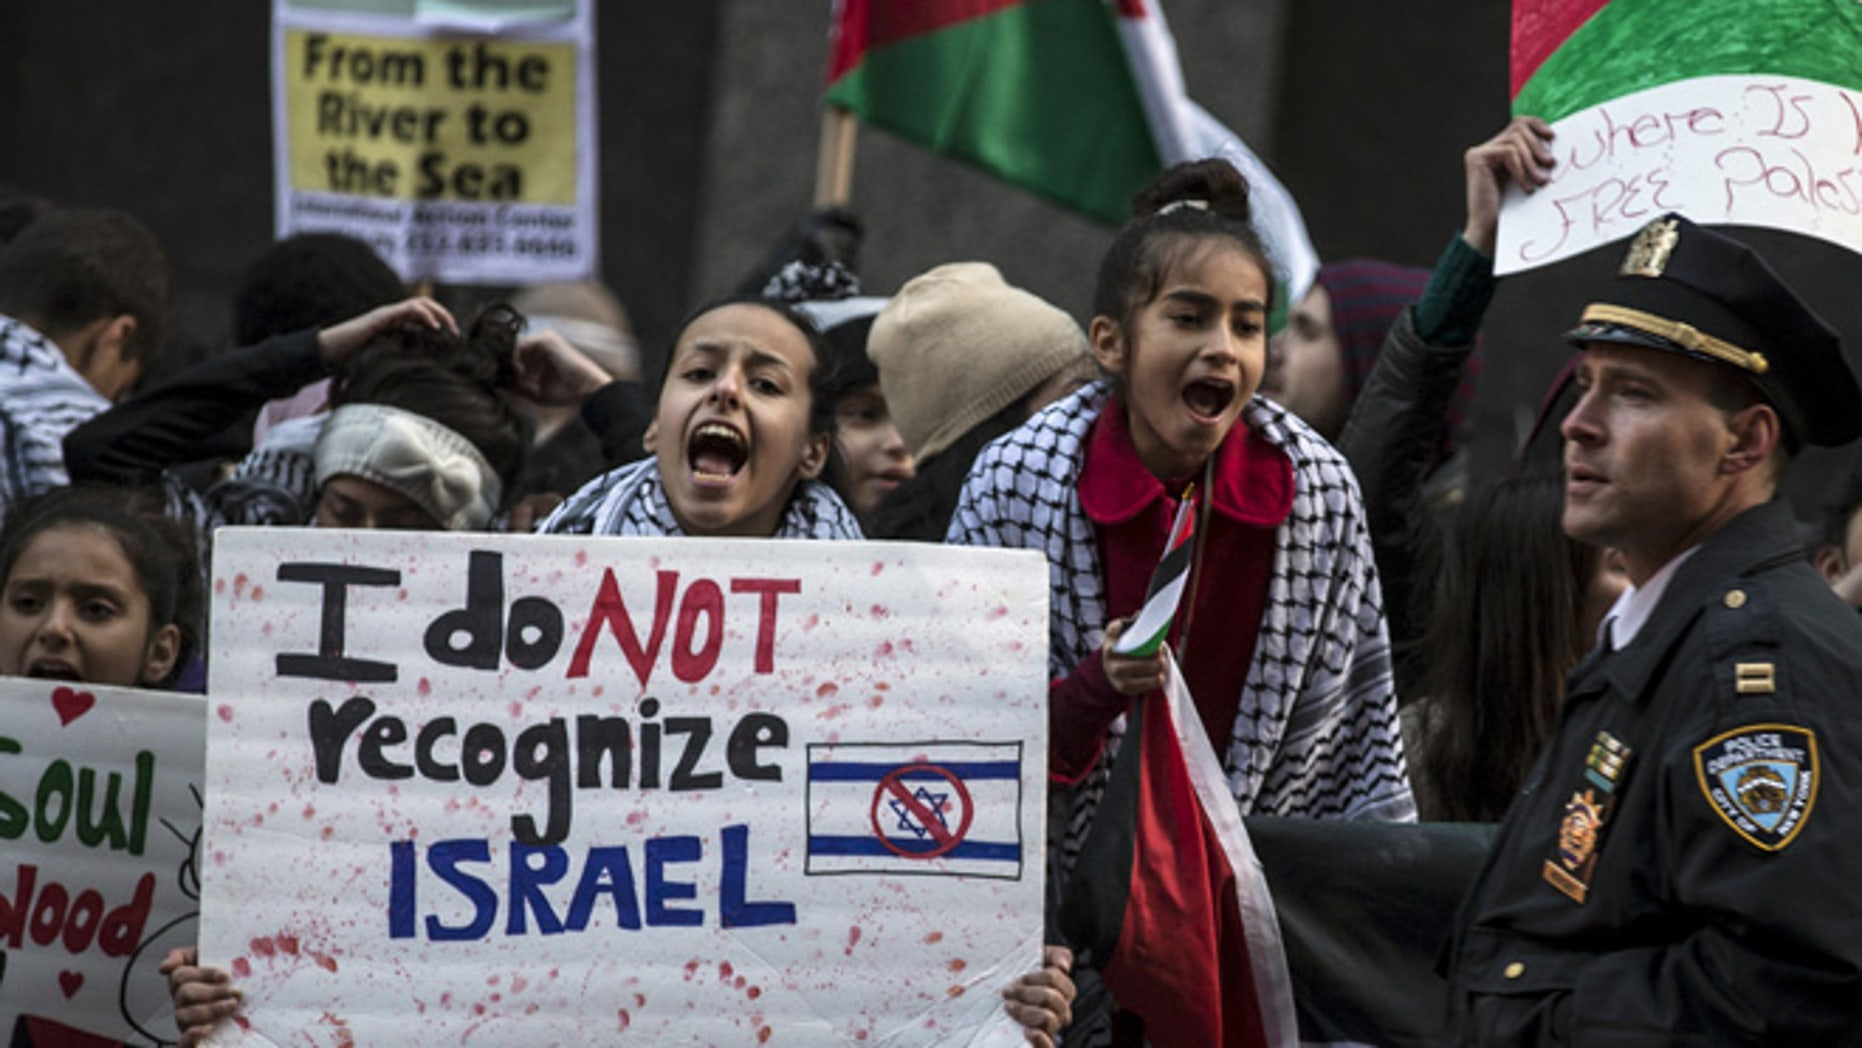 A demonstrator chants slogans during a pro-Palestinian protest in New York's Times Square, in this Oct. 18, 2015 file photo.